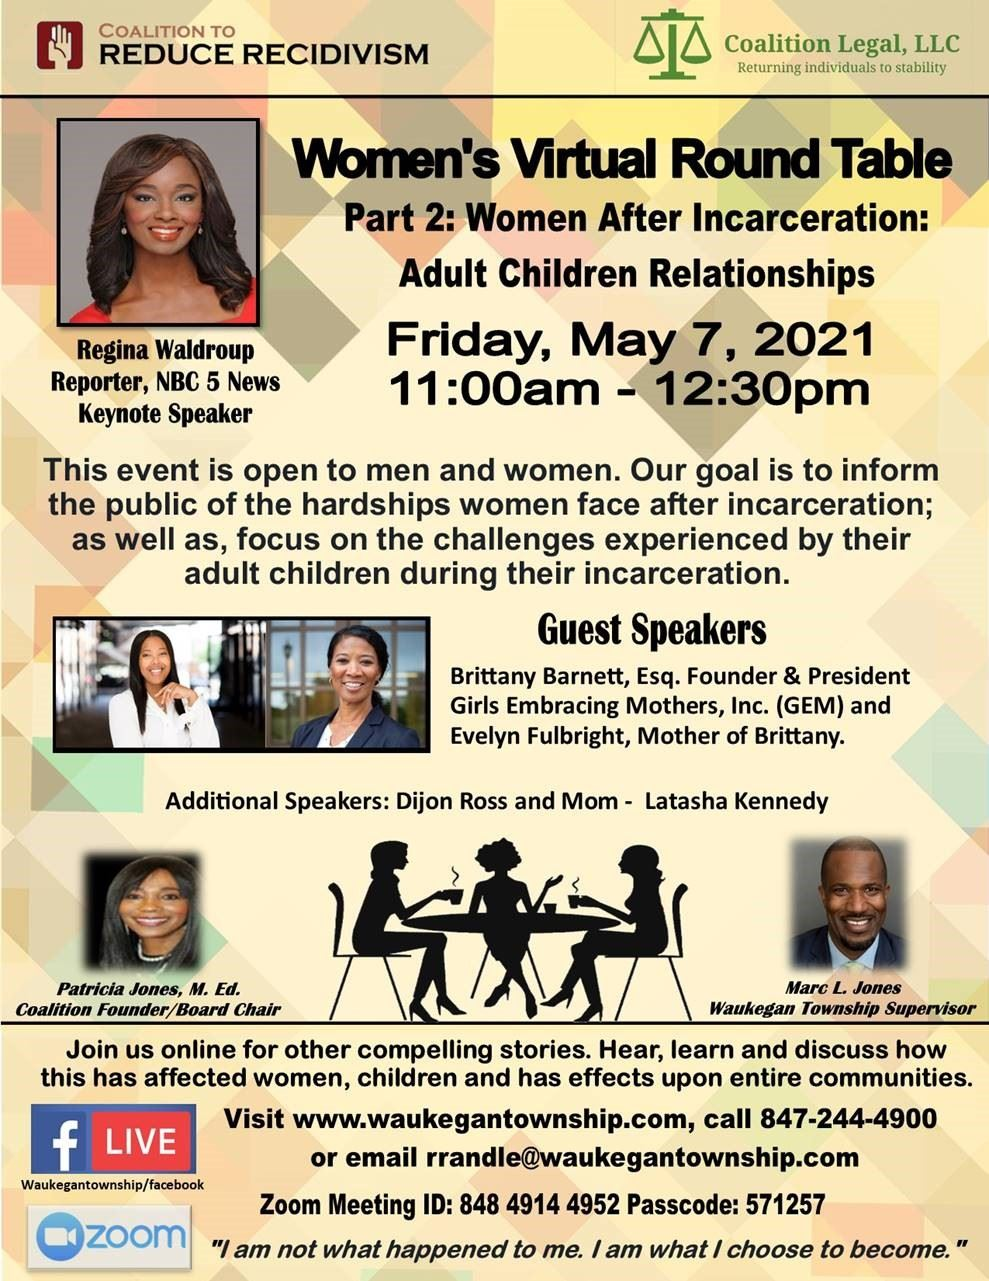 Women's Virtual Round Table Part 2